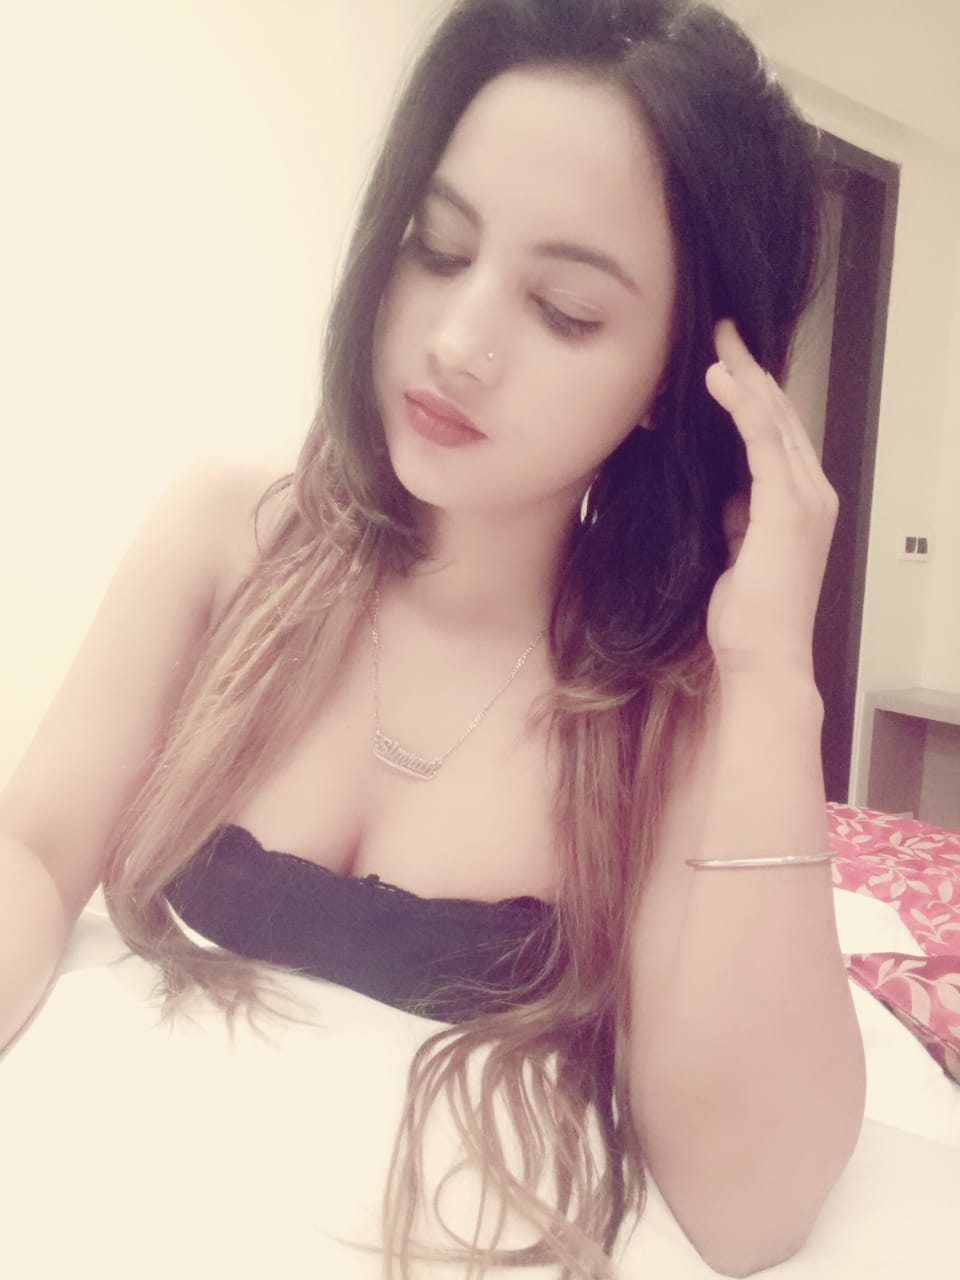 Russian Escorts In  Bhiwandi